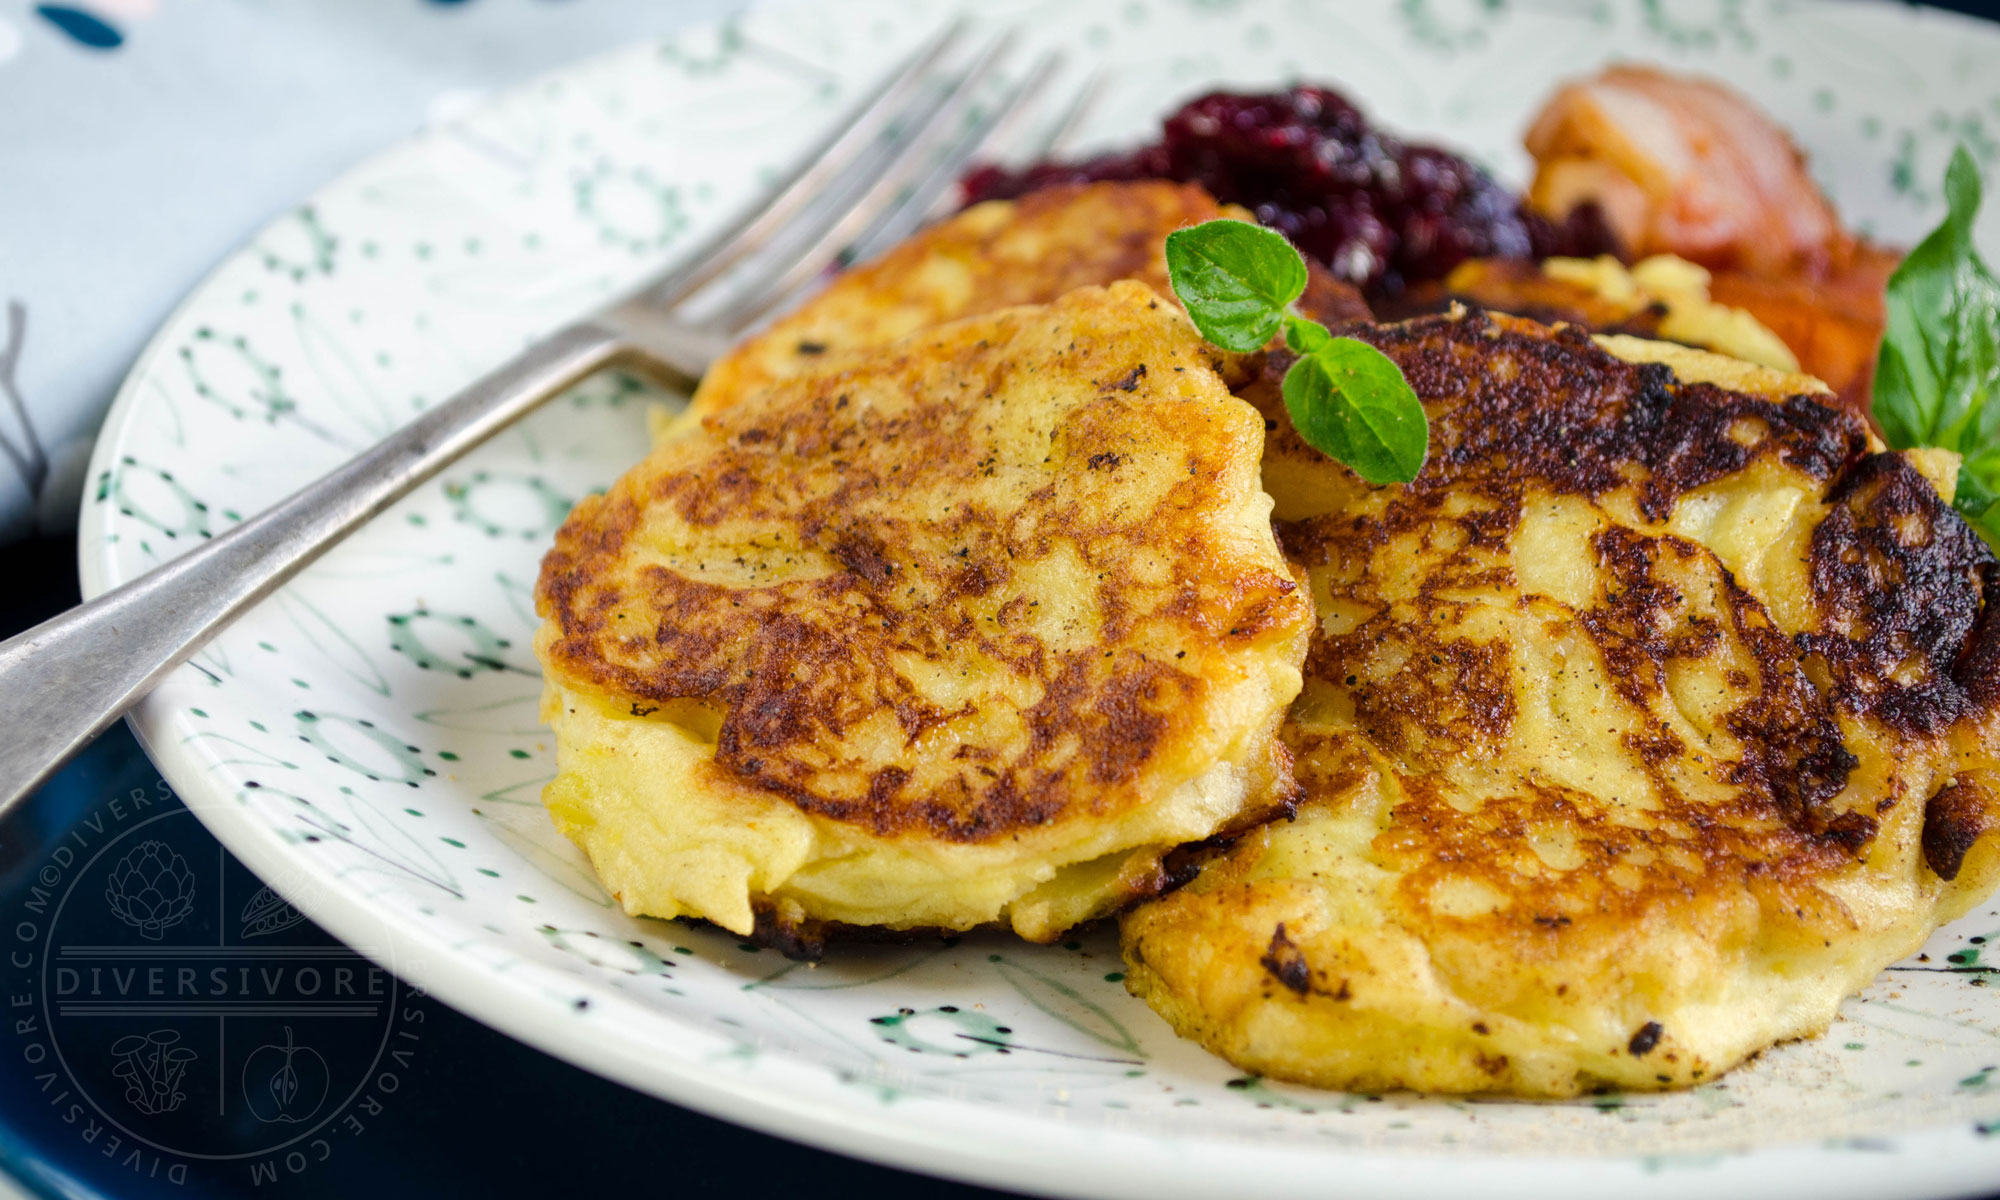 Potatisbullar - Swedish potato cakes, served with cranberries and bacon